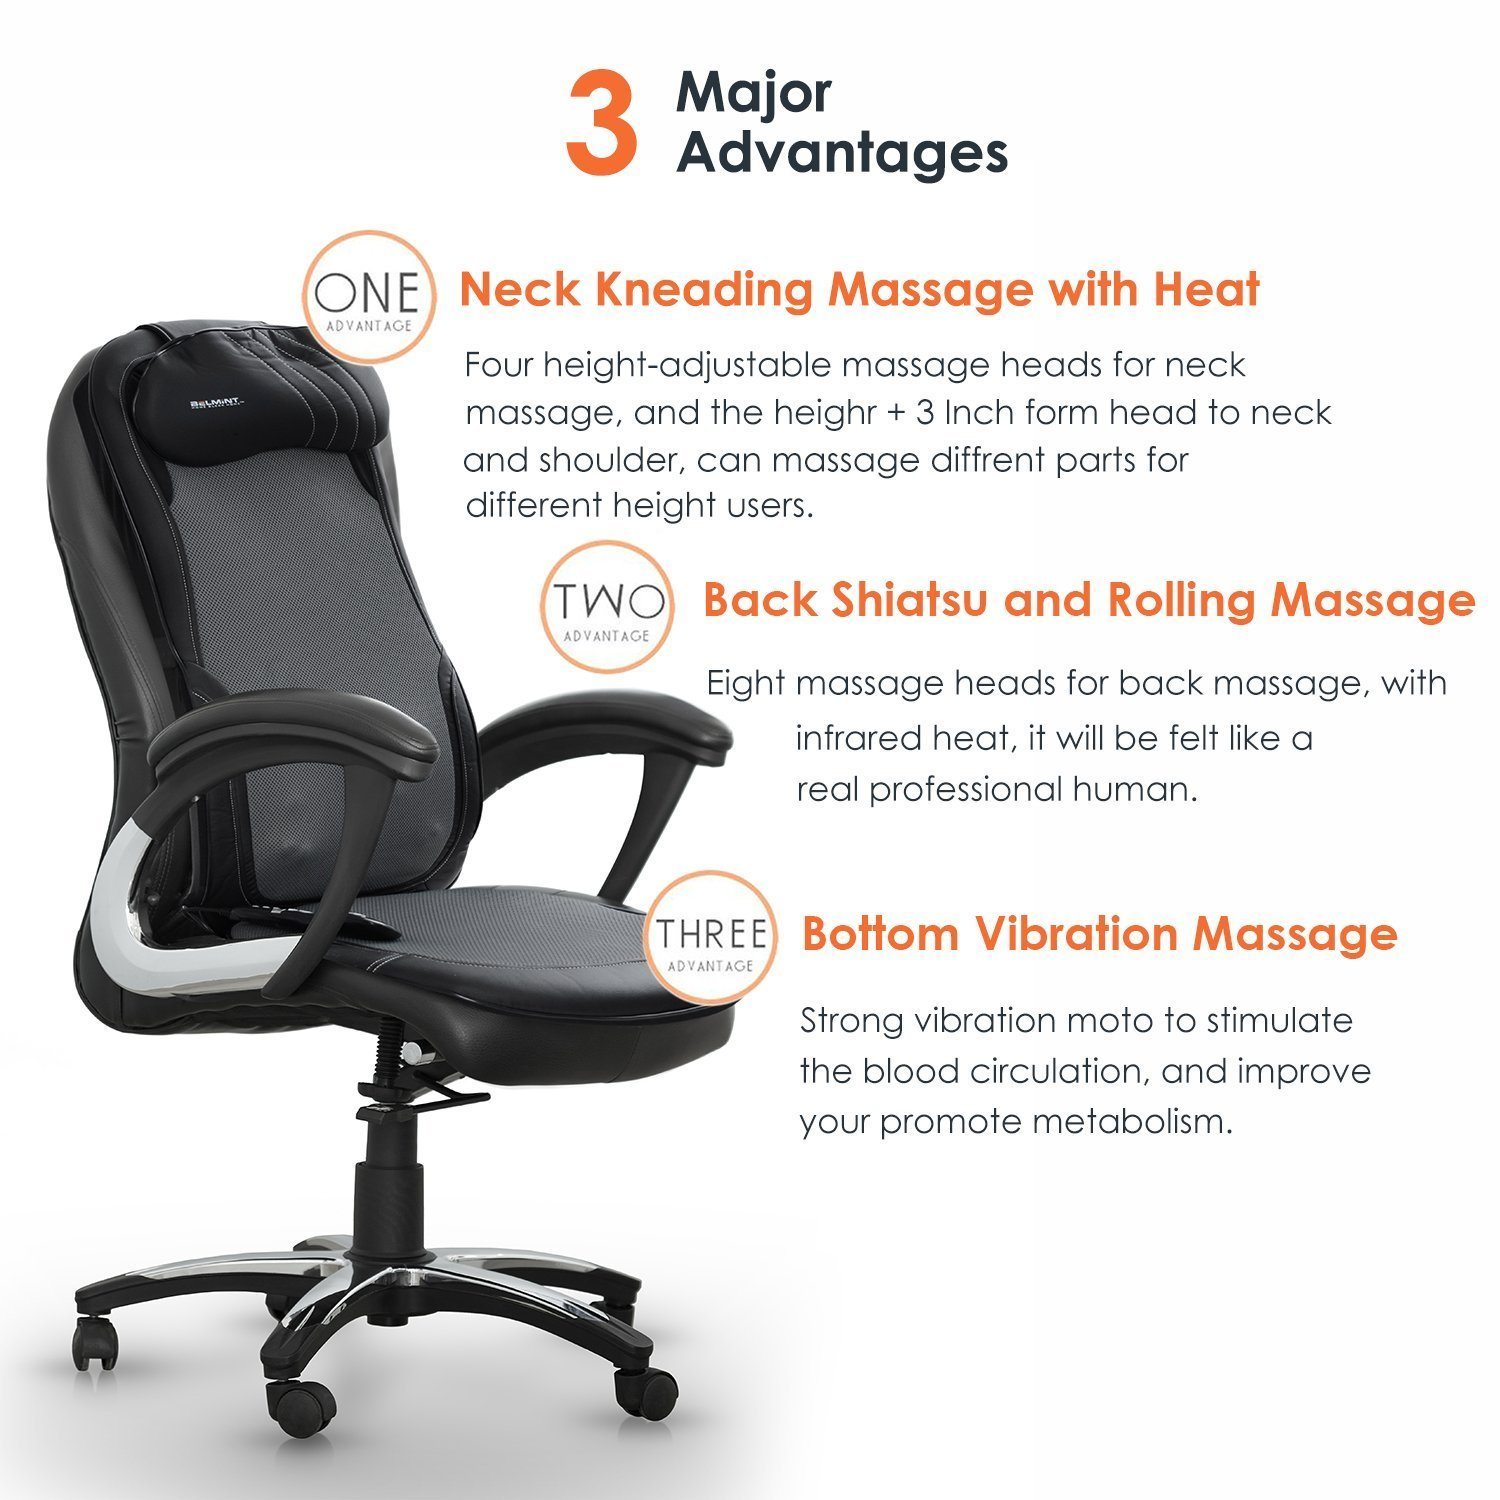 amazoncom shiatsu back massager cushion with soothing heat function for relieving stress and muscle tension massaging cushion with 3 massage styles